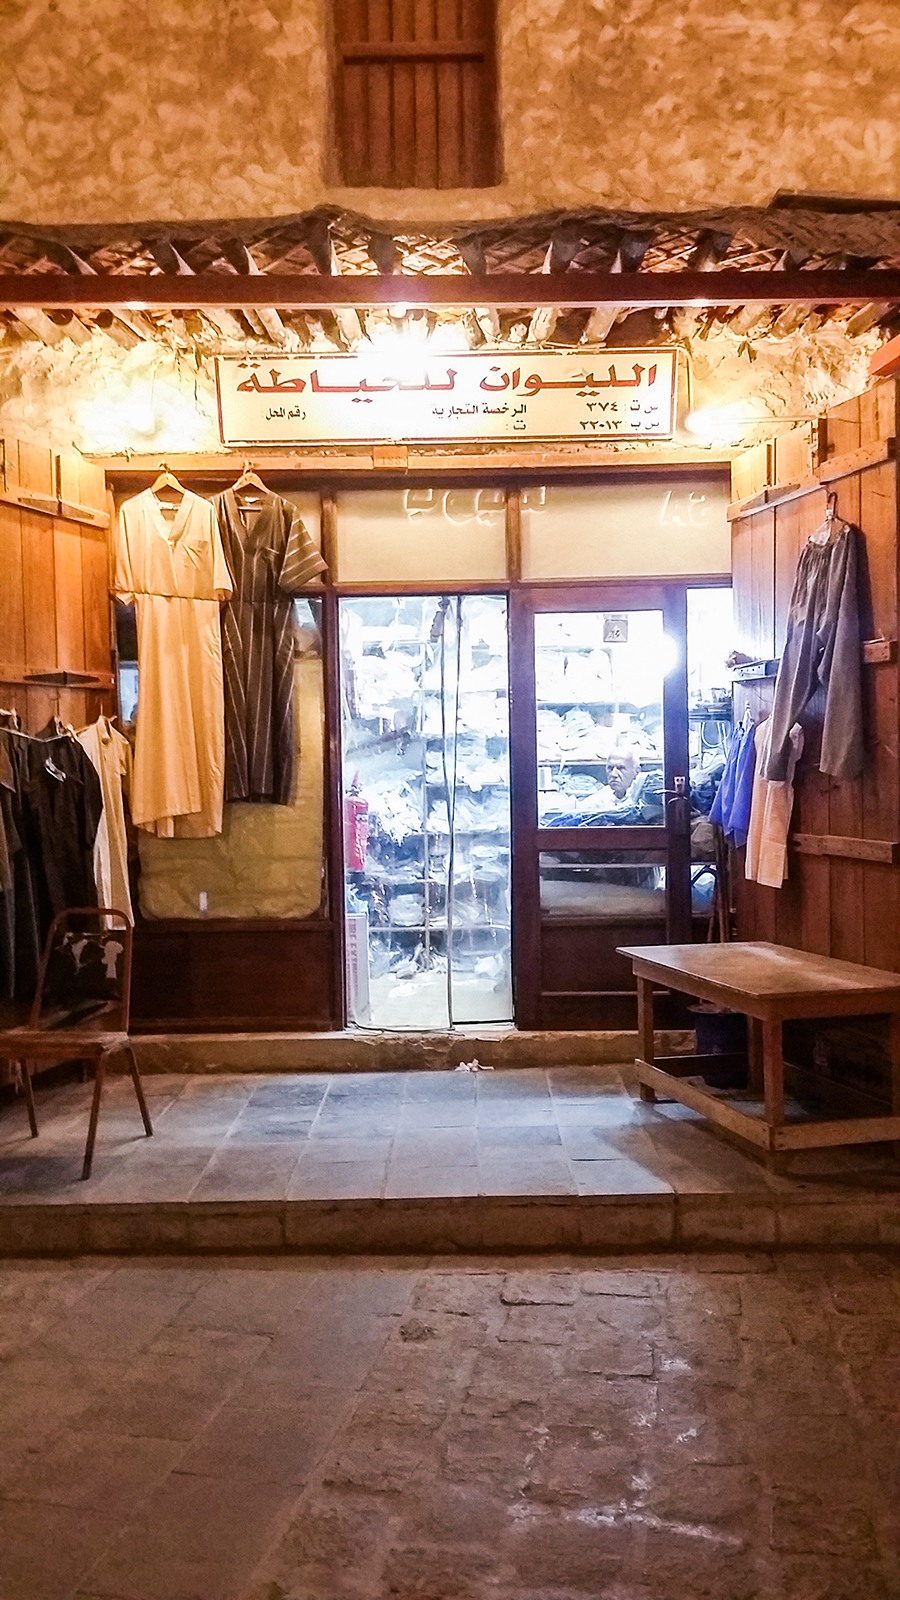 Clothing shop at Souq Waqif (سوق واقف), Doha, Qatar.